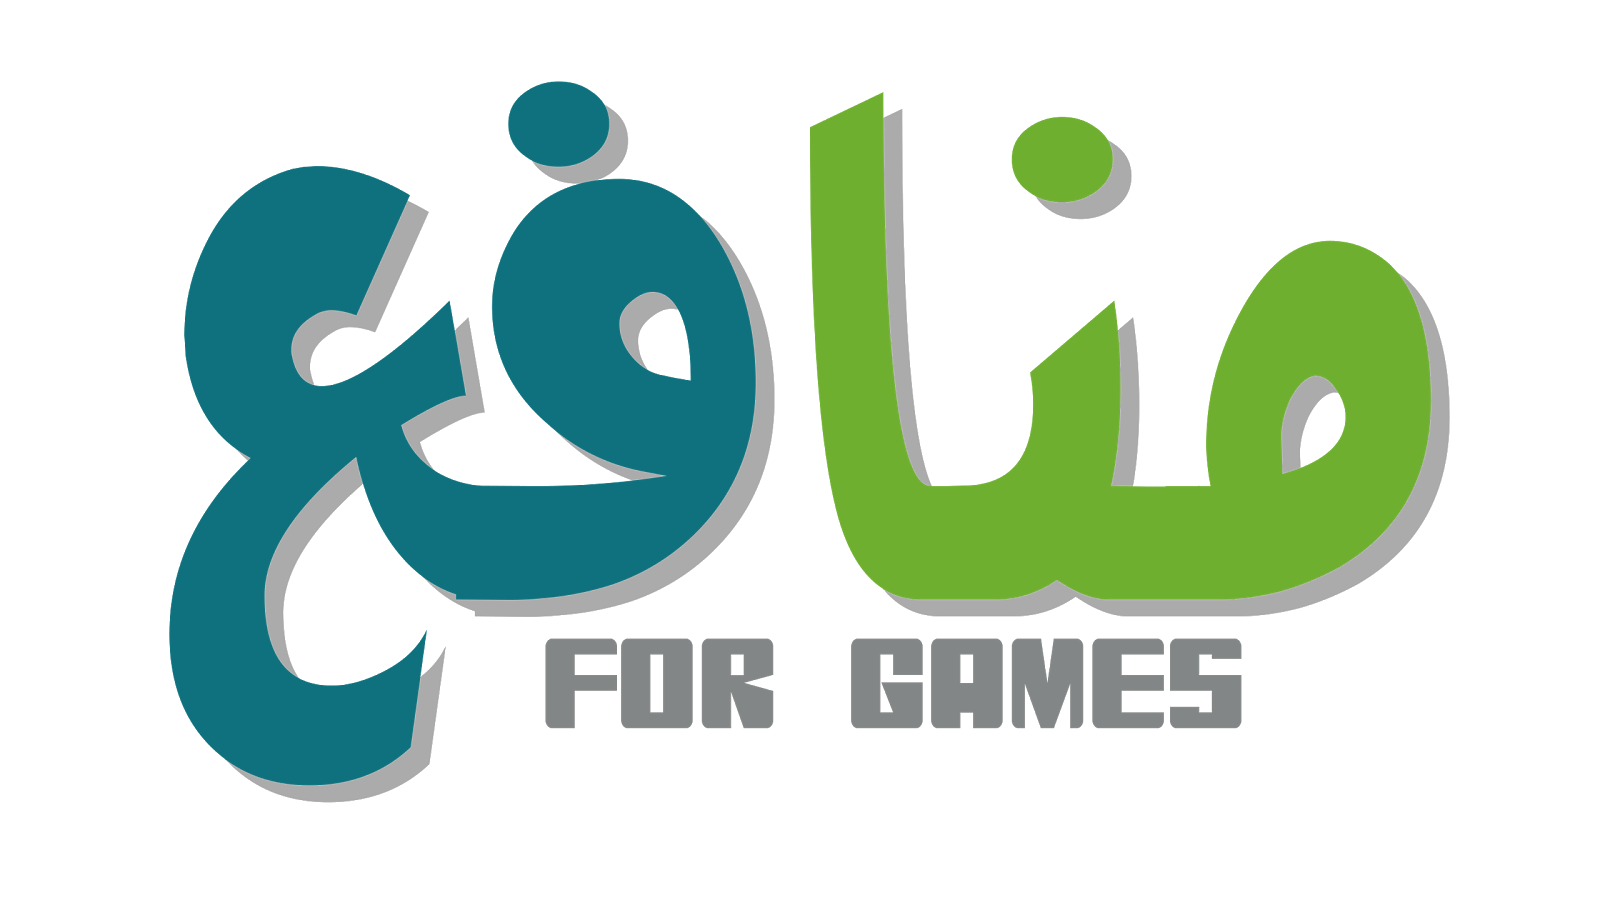 Manafea For Games